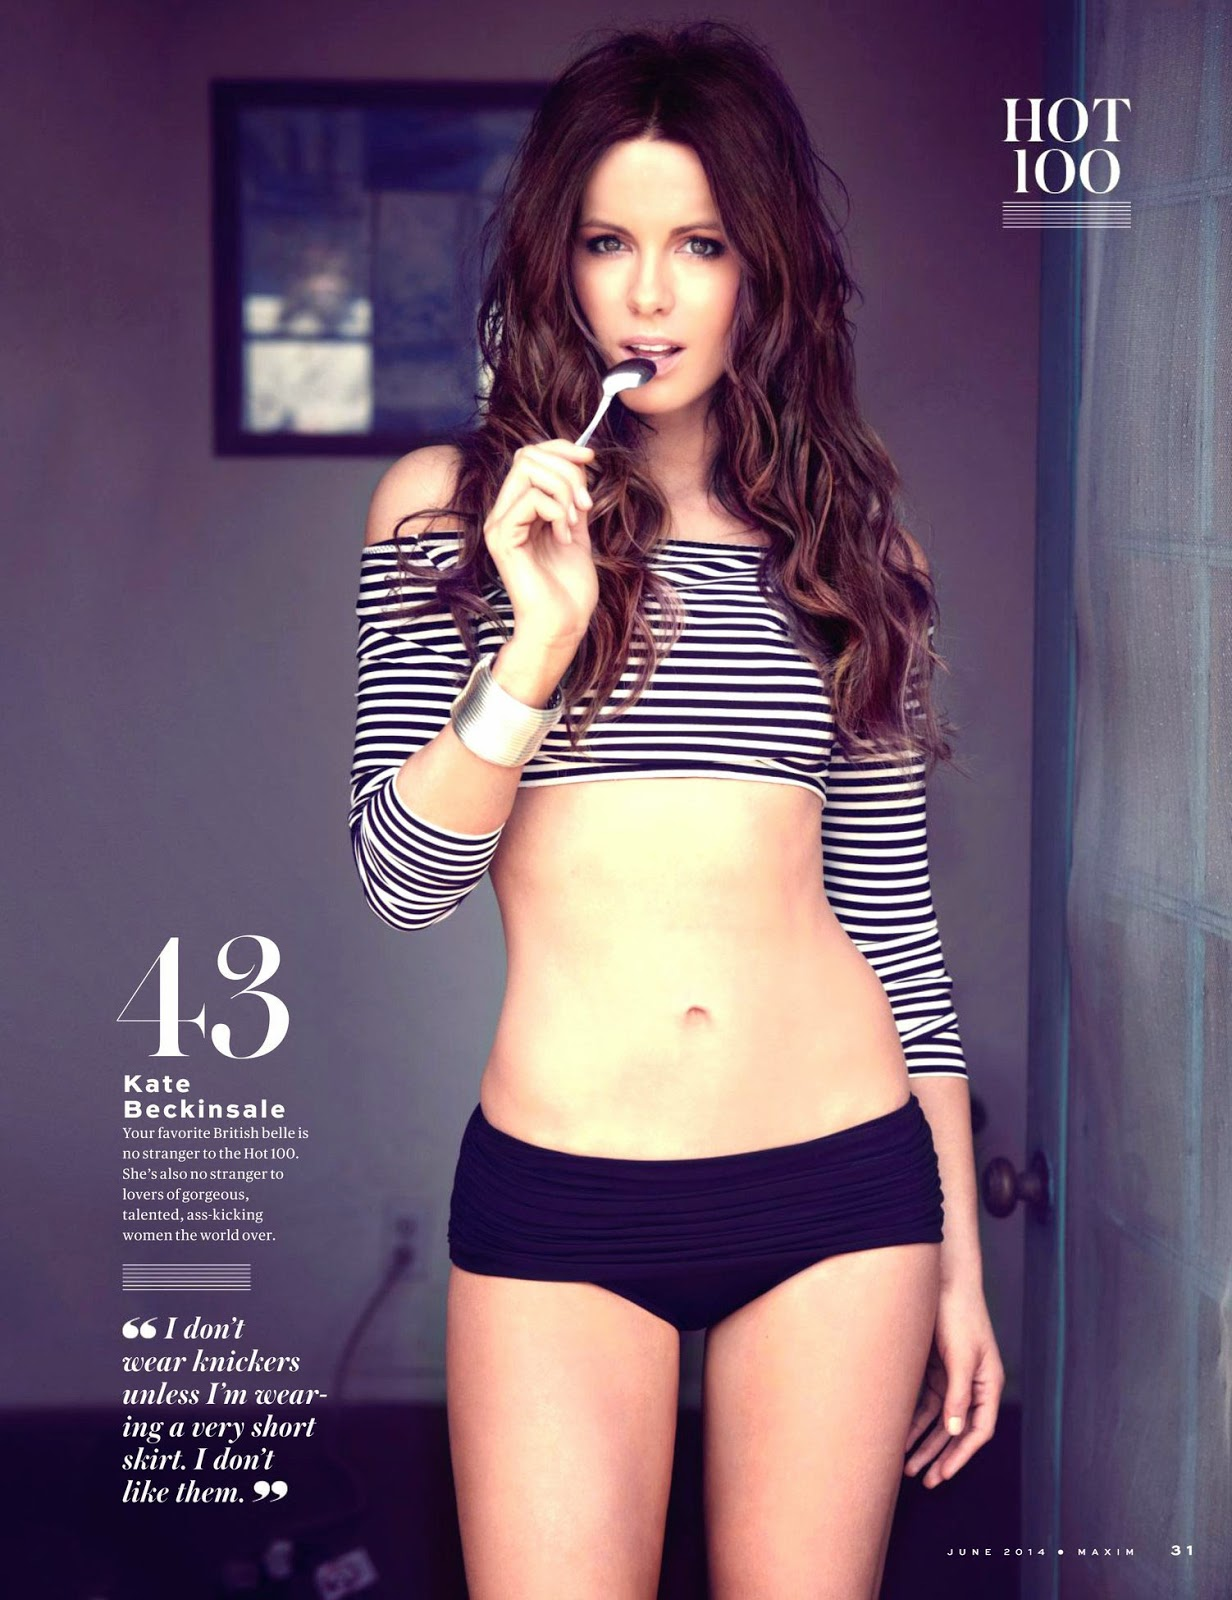 Gallery images and information nicky whelan hall pass gif - Nicky Whelan Vs Kate Beckinsale